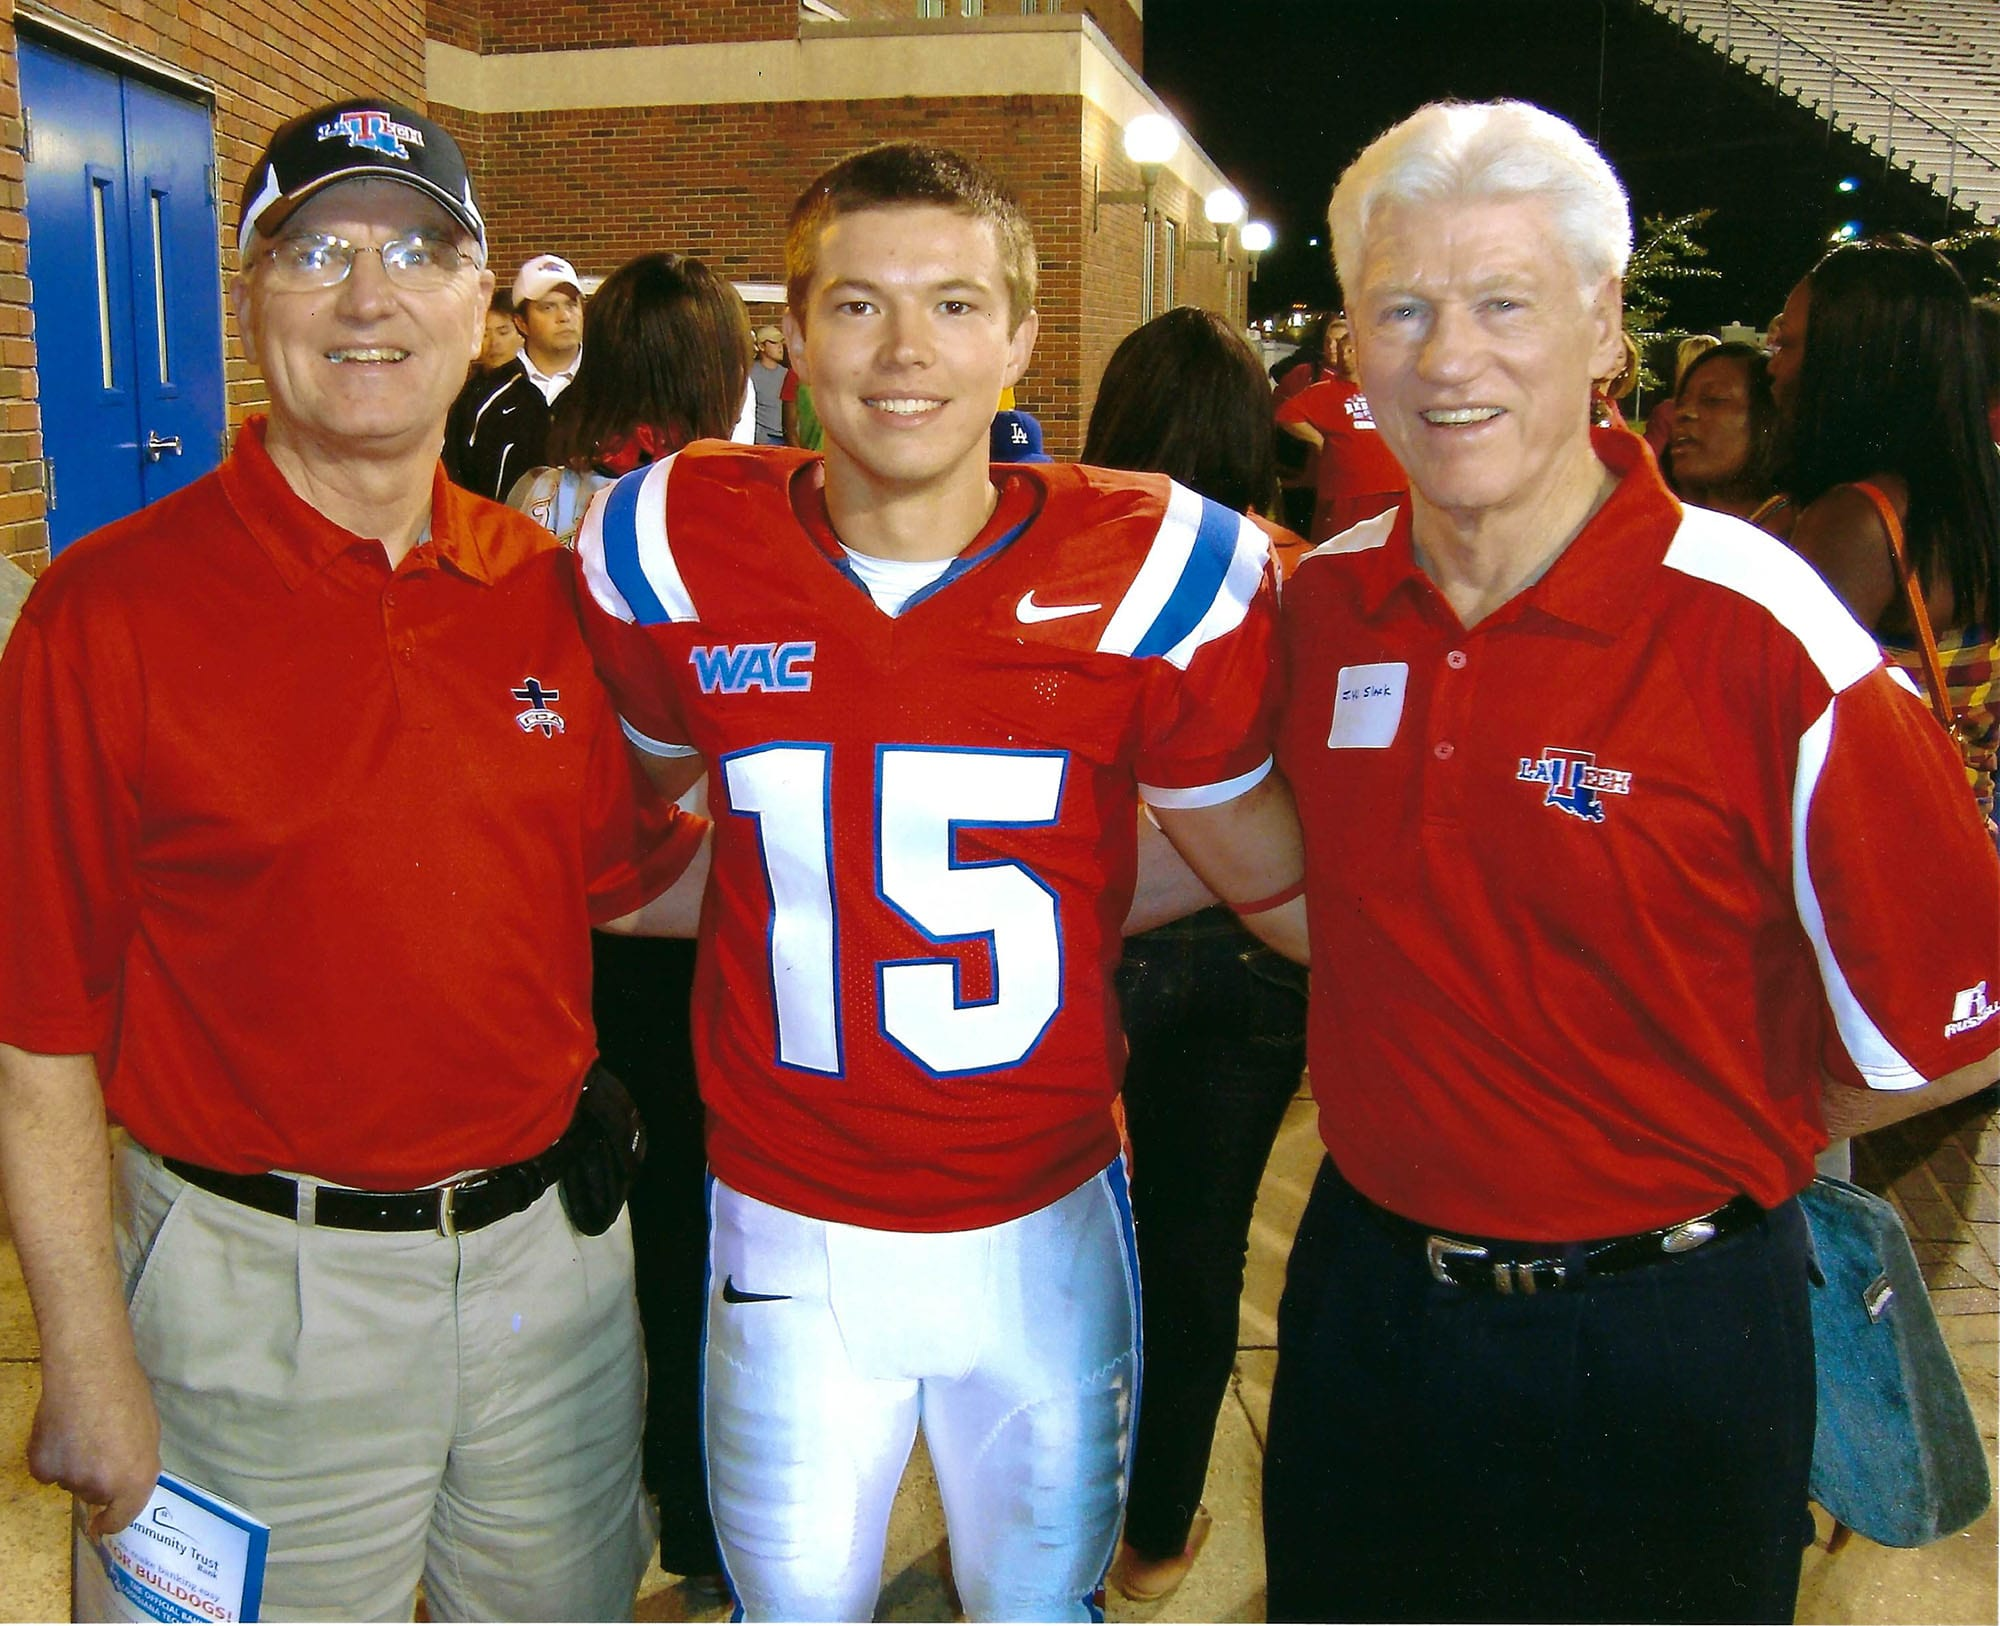 J.W. Slack's induction into La. Tech Athletics Hall of Fame a long time coming - Bossier Press-Tribune Online